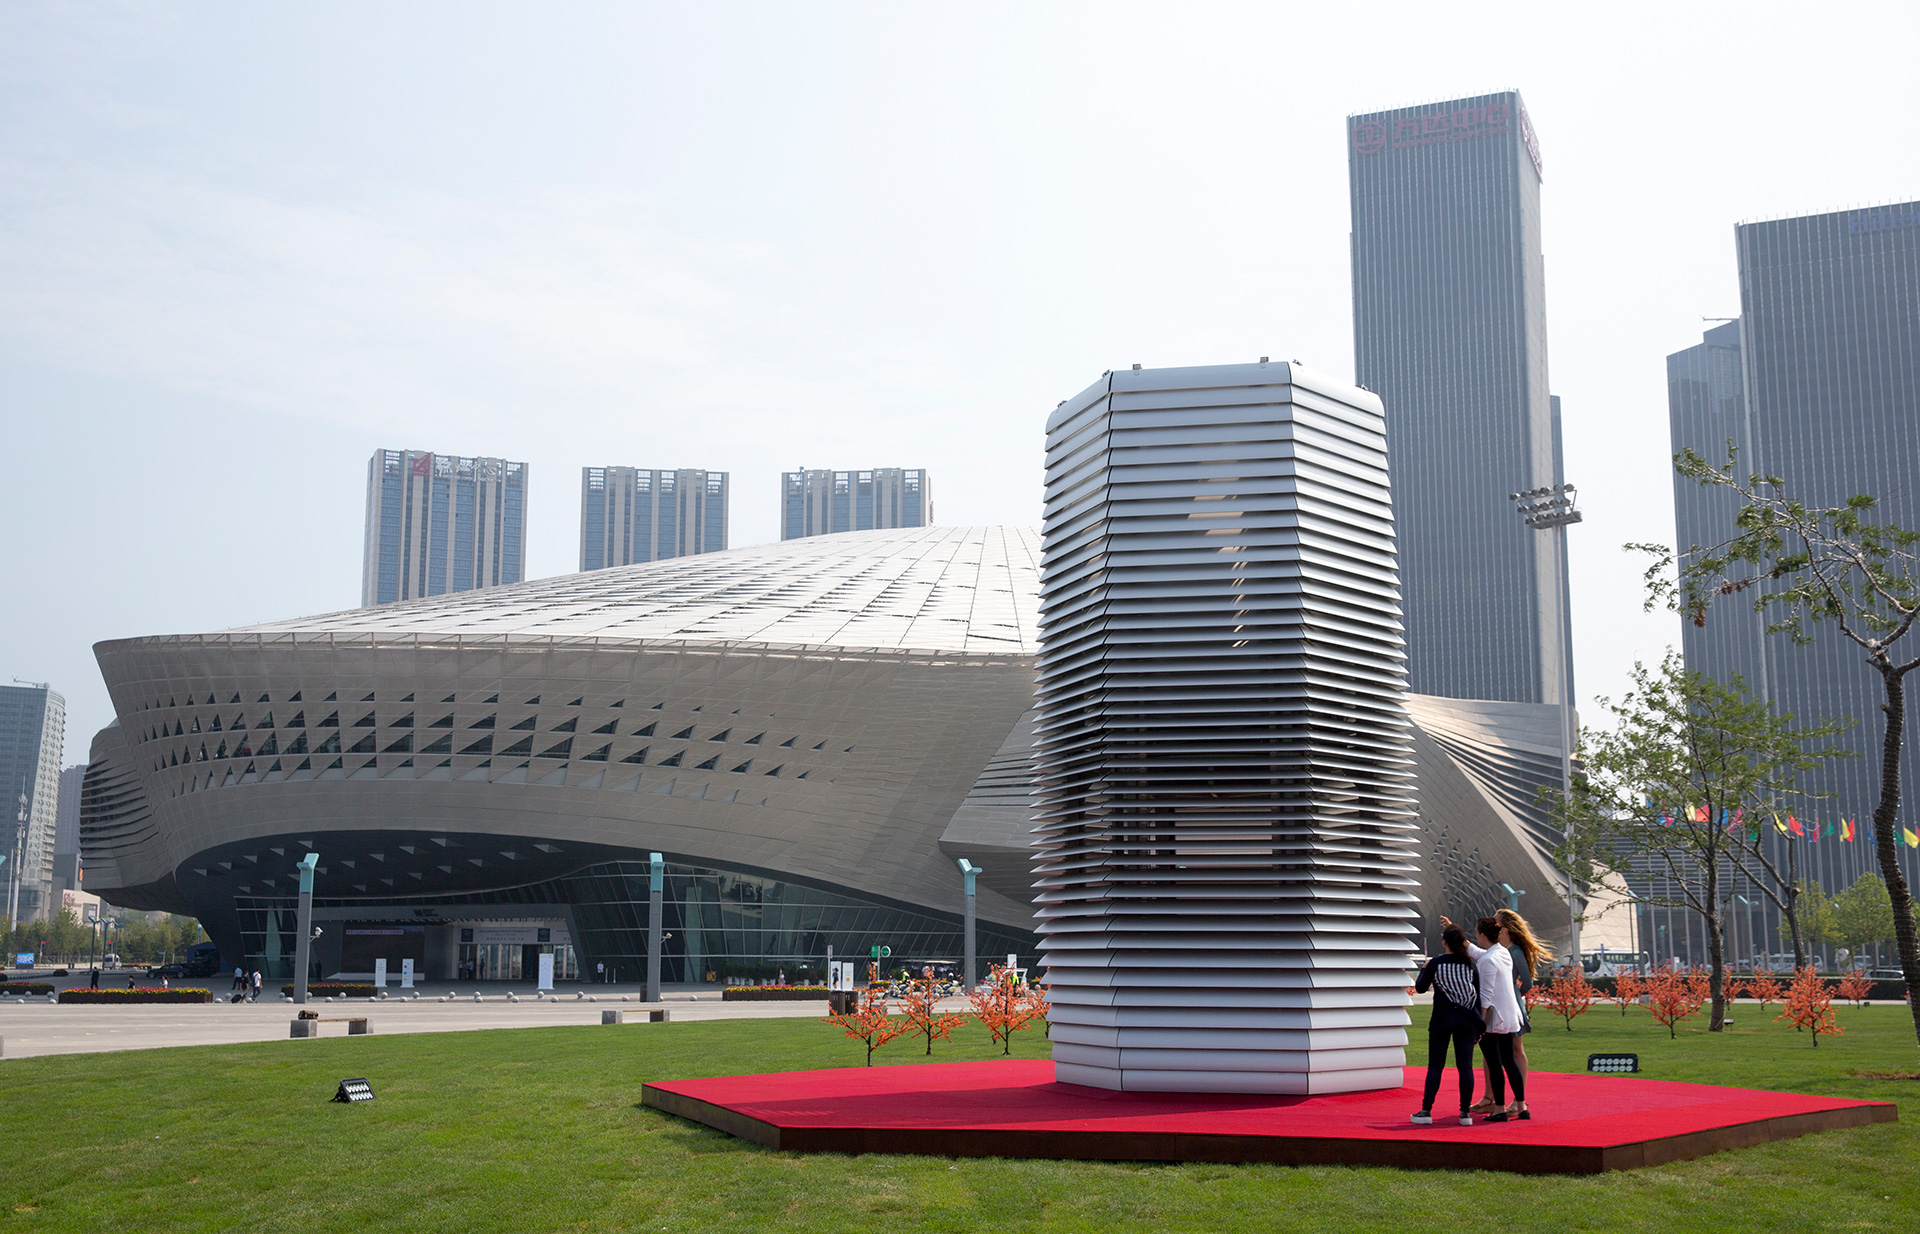 Smog Free Project in Dalian, China | The Smog Free Project | Daan Roosegaarde | STIRworld